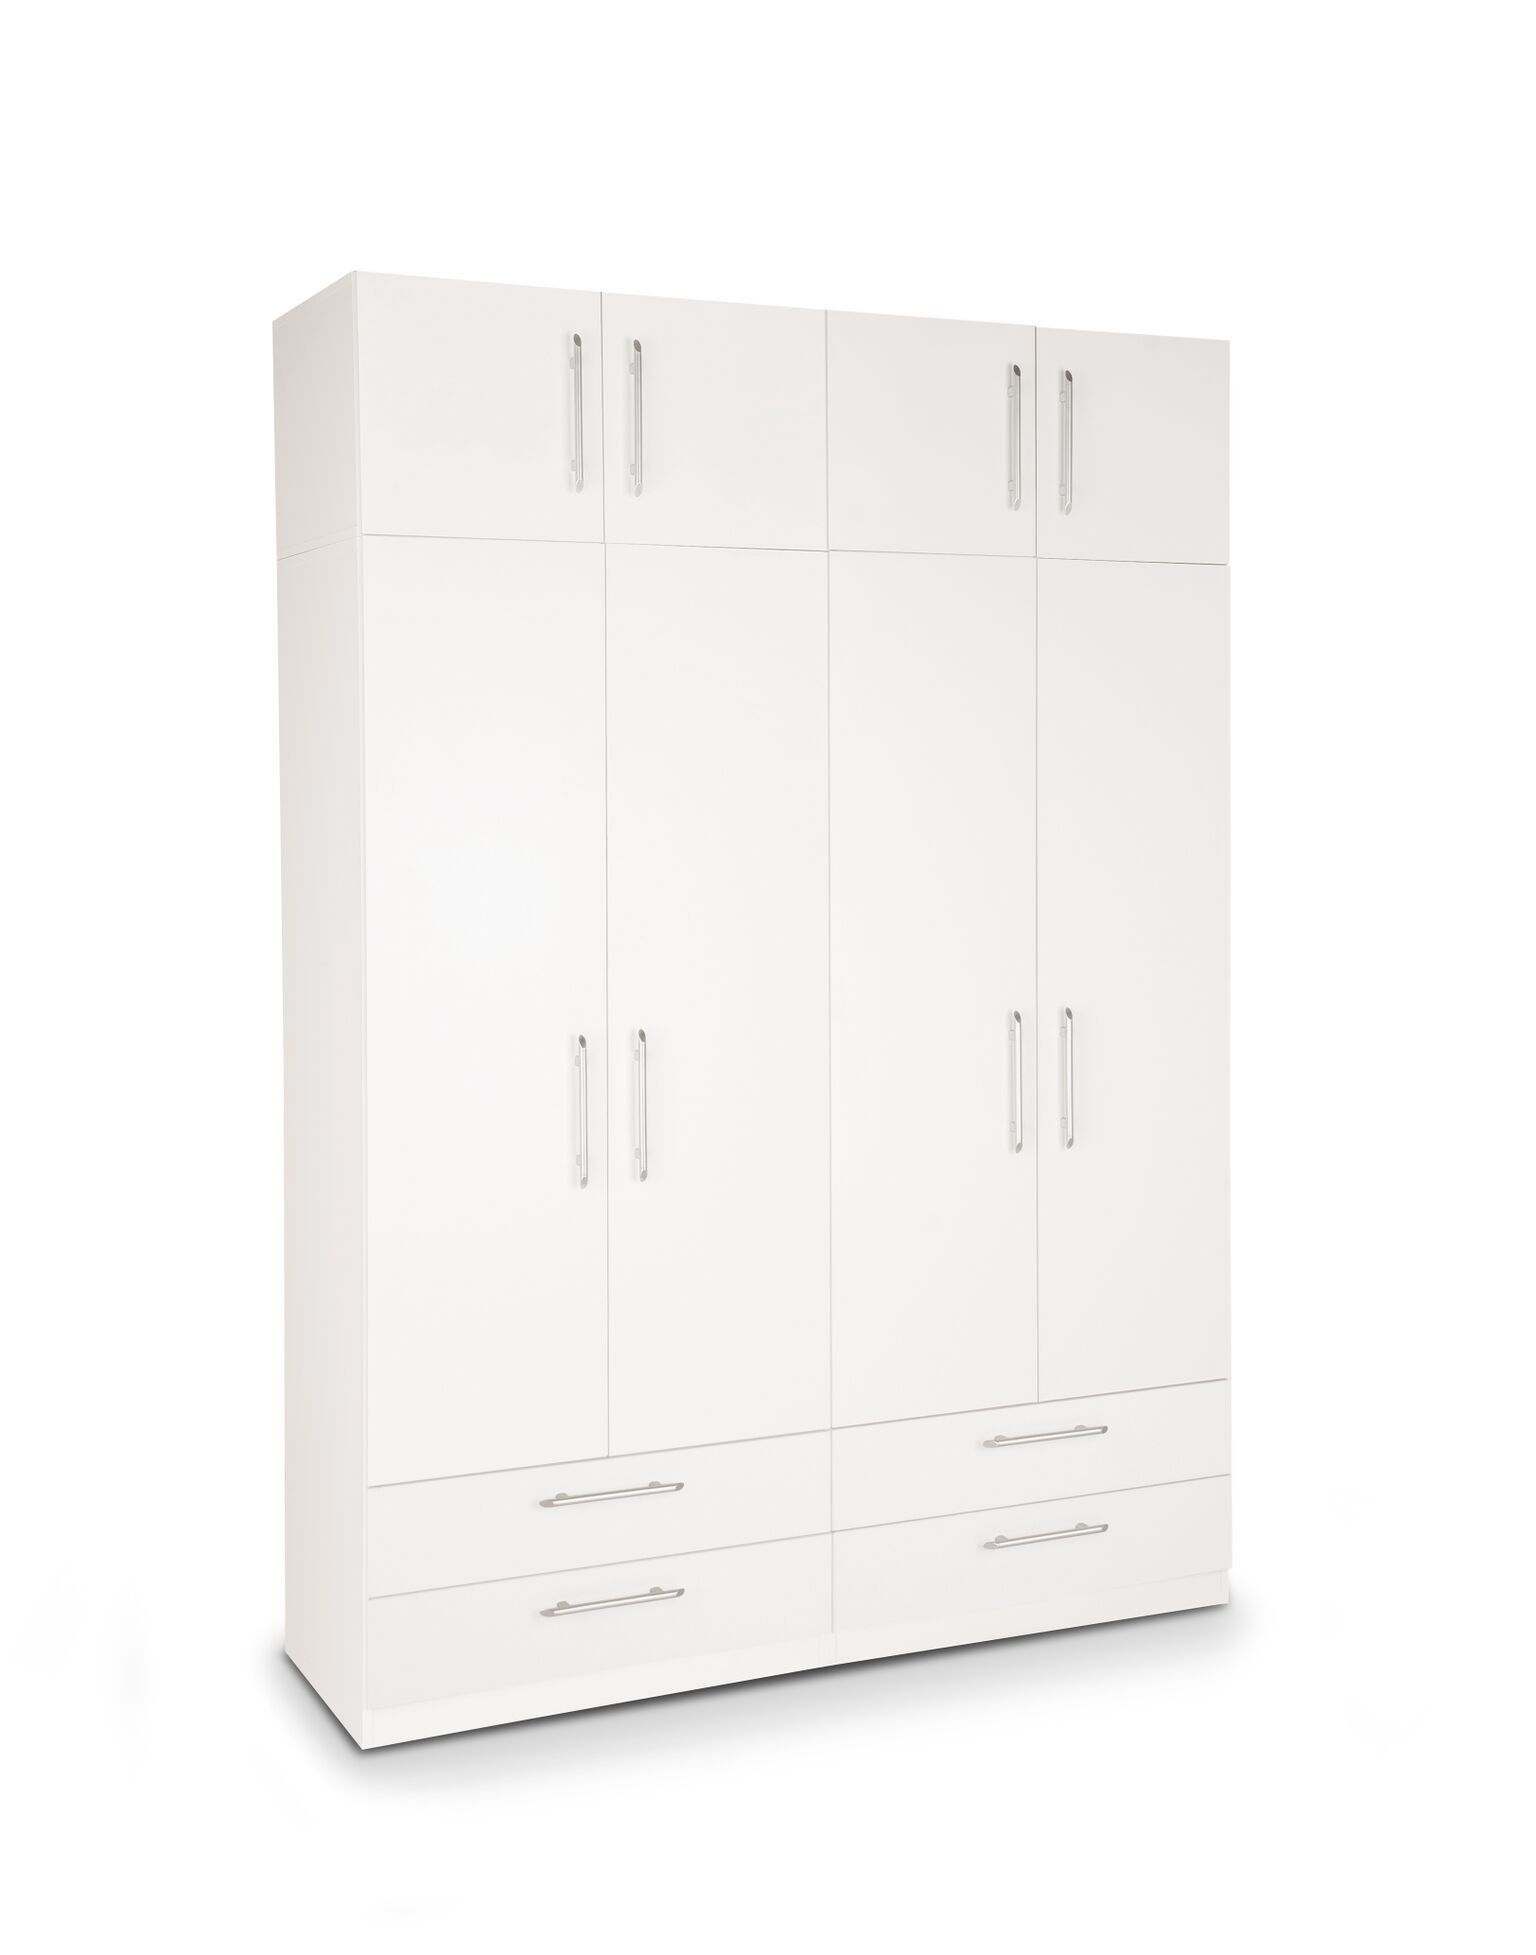 Image of Acton Plus 4 Door Wardrobe With 4 Wide Drawers